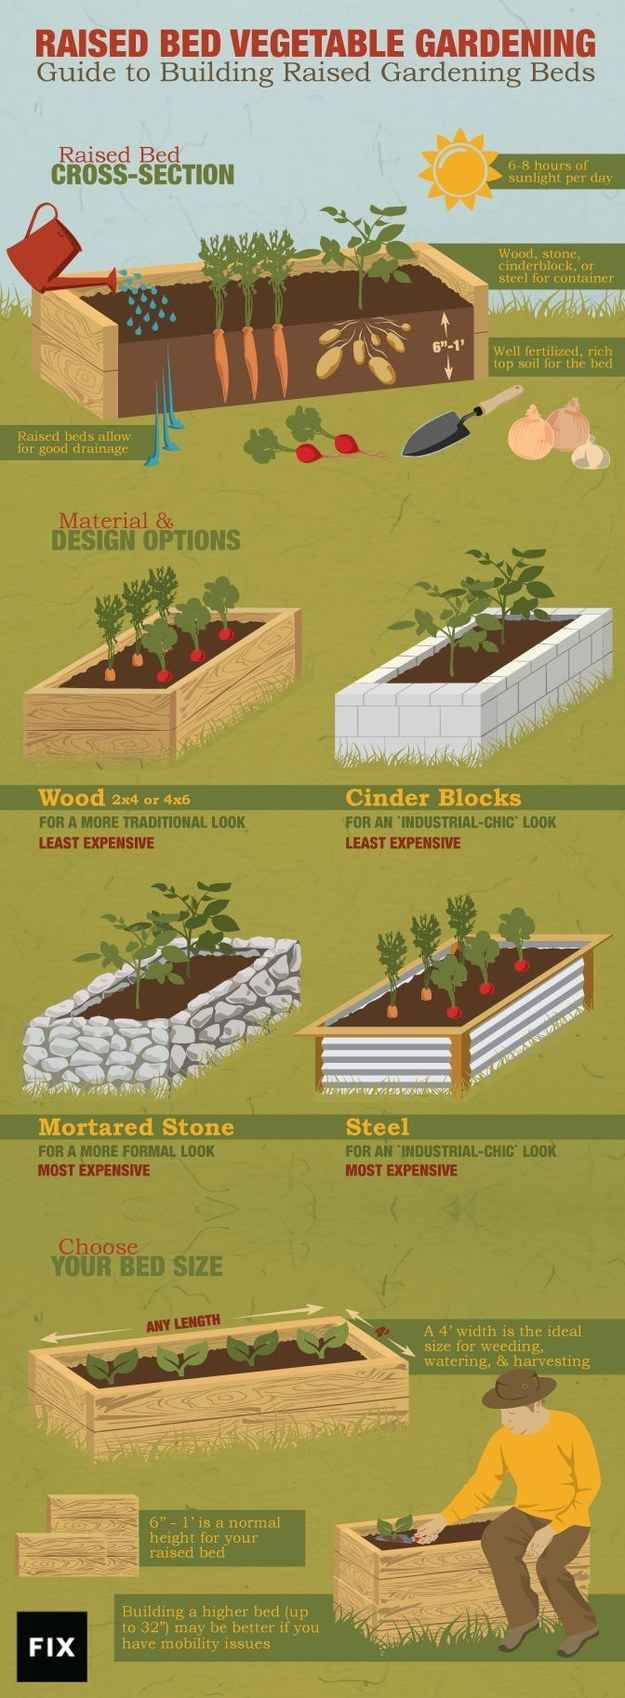 Raised Gardening Beds Keep Vegetables Away From Contaminated Soil, Can  Deter Some Pests, And